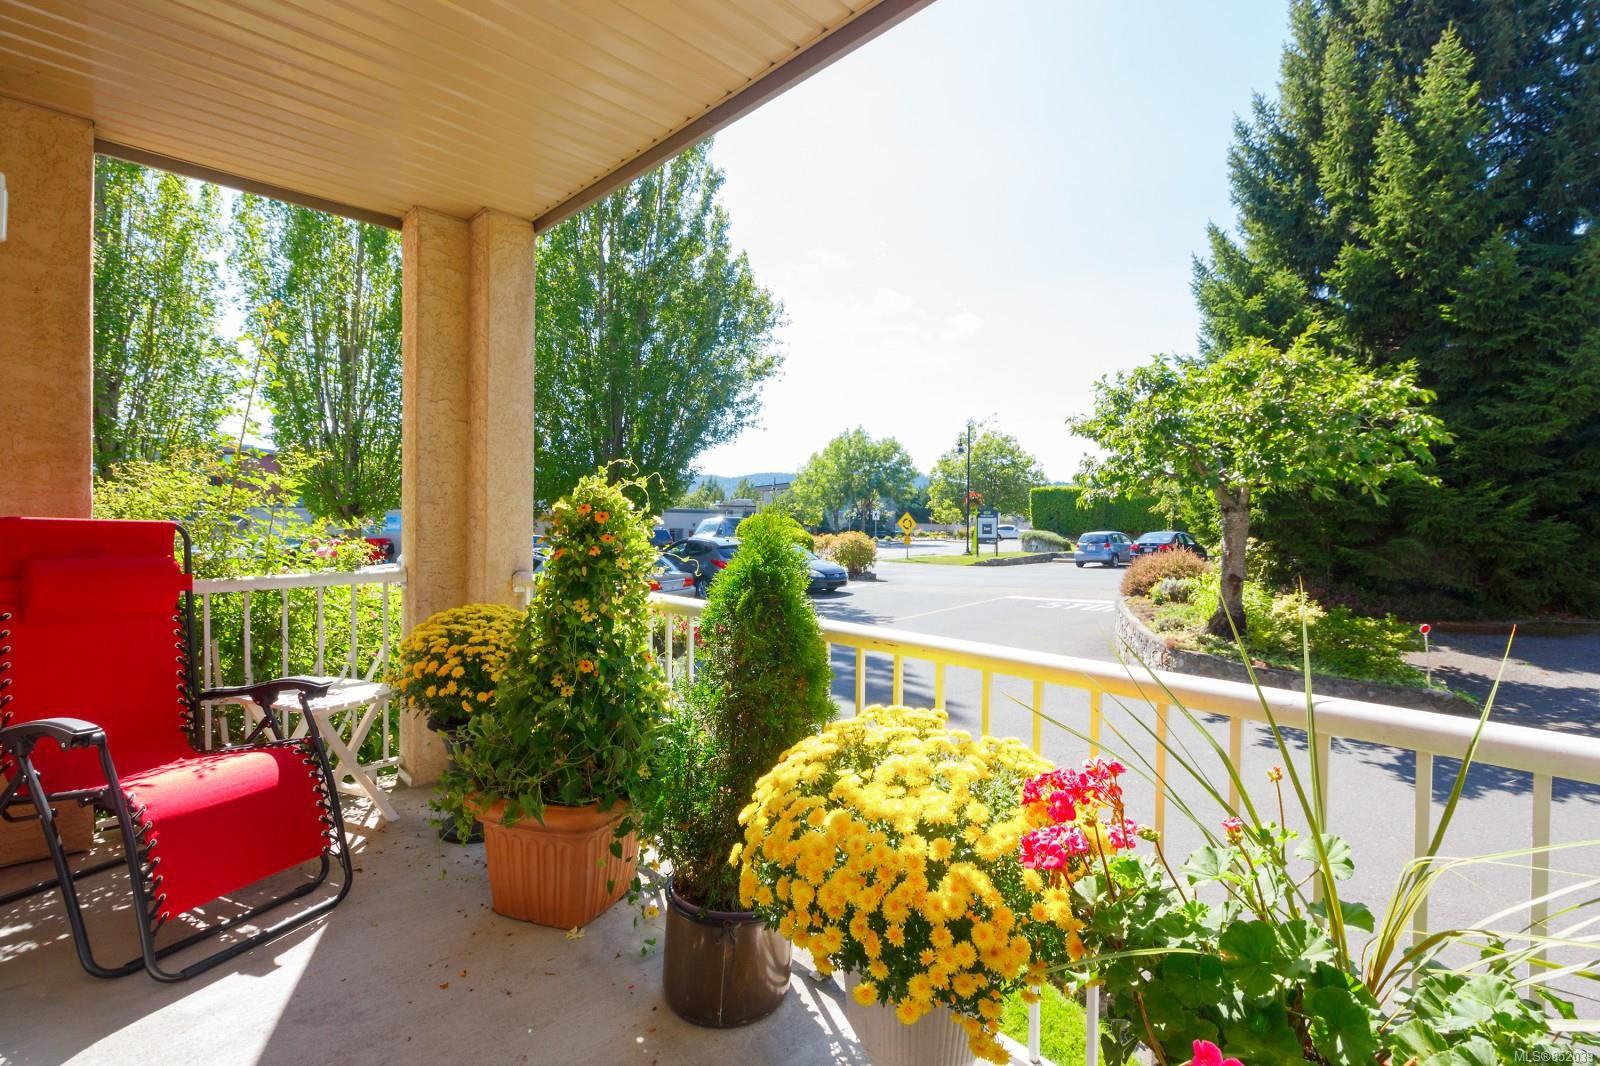 Photo 21: Photos: 109 1240 Verdier Ave in : CS Brentwood Bay Condo for sale (Central Saanich)  : MLS®# 852039